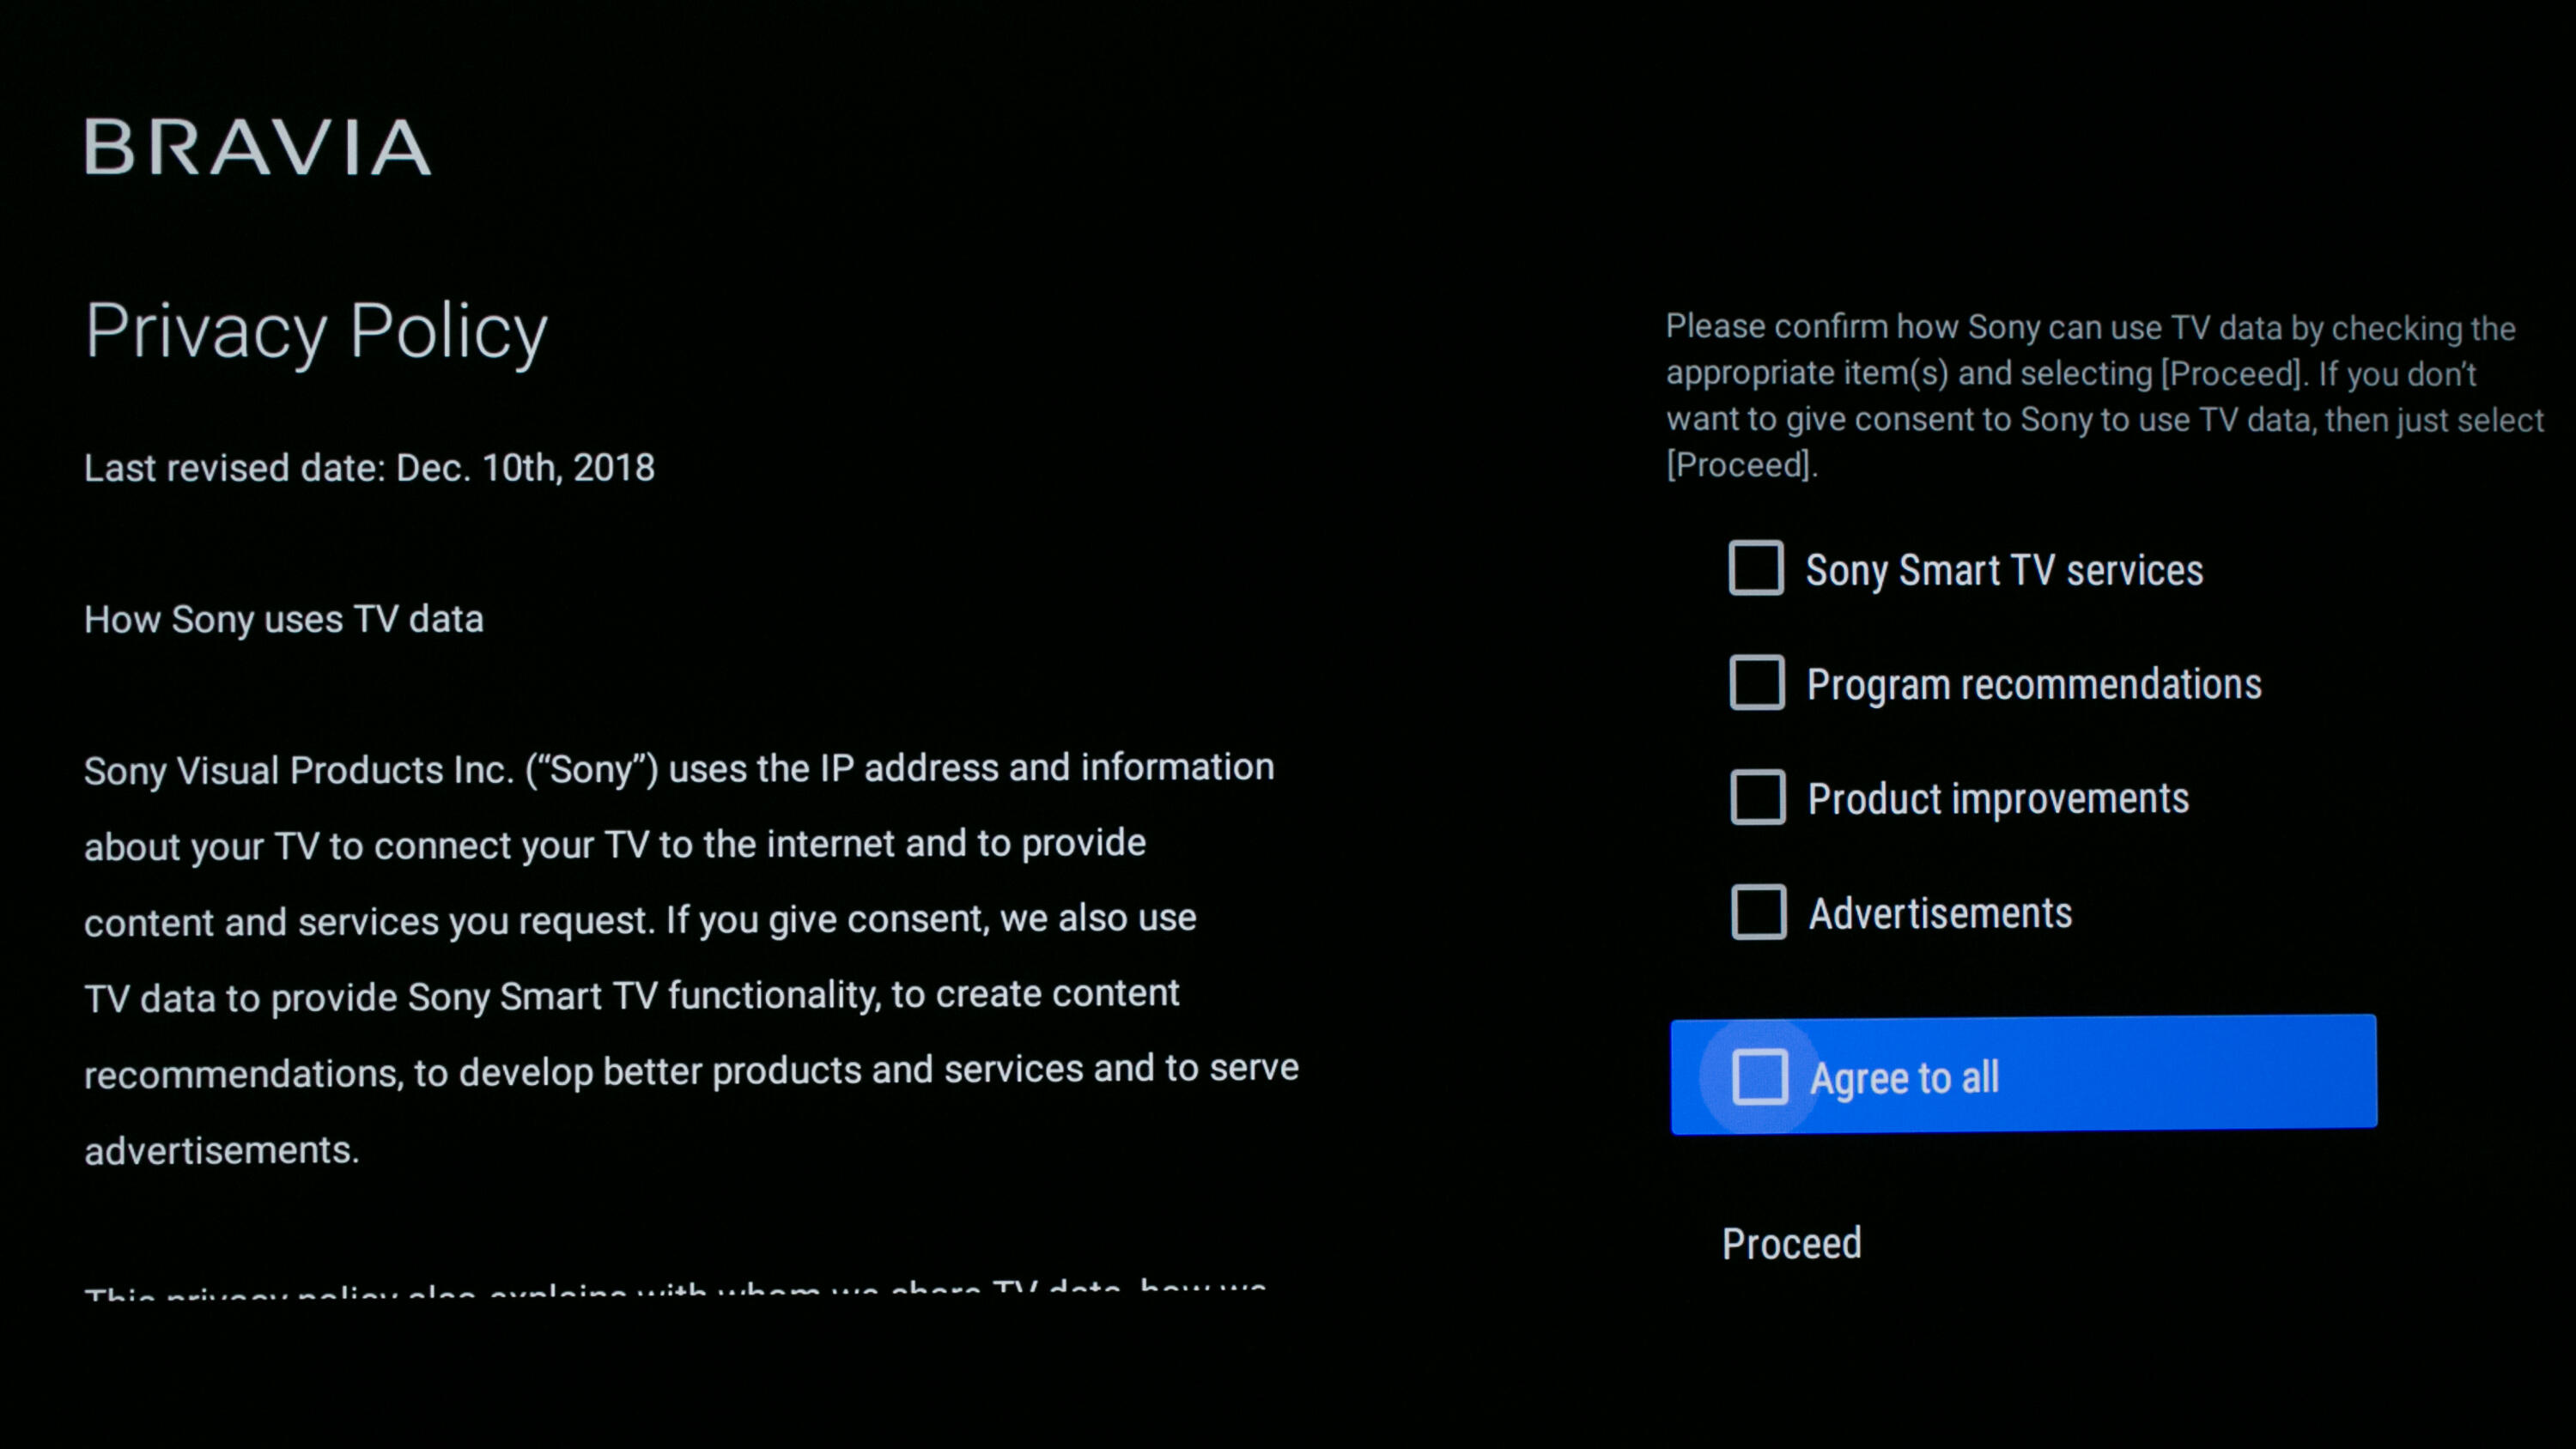 16-privacy-policy-user-agreements-tvs-2019-cnet